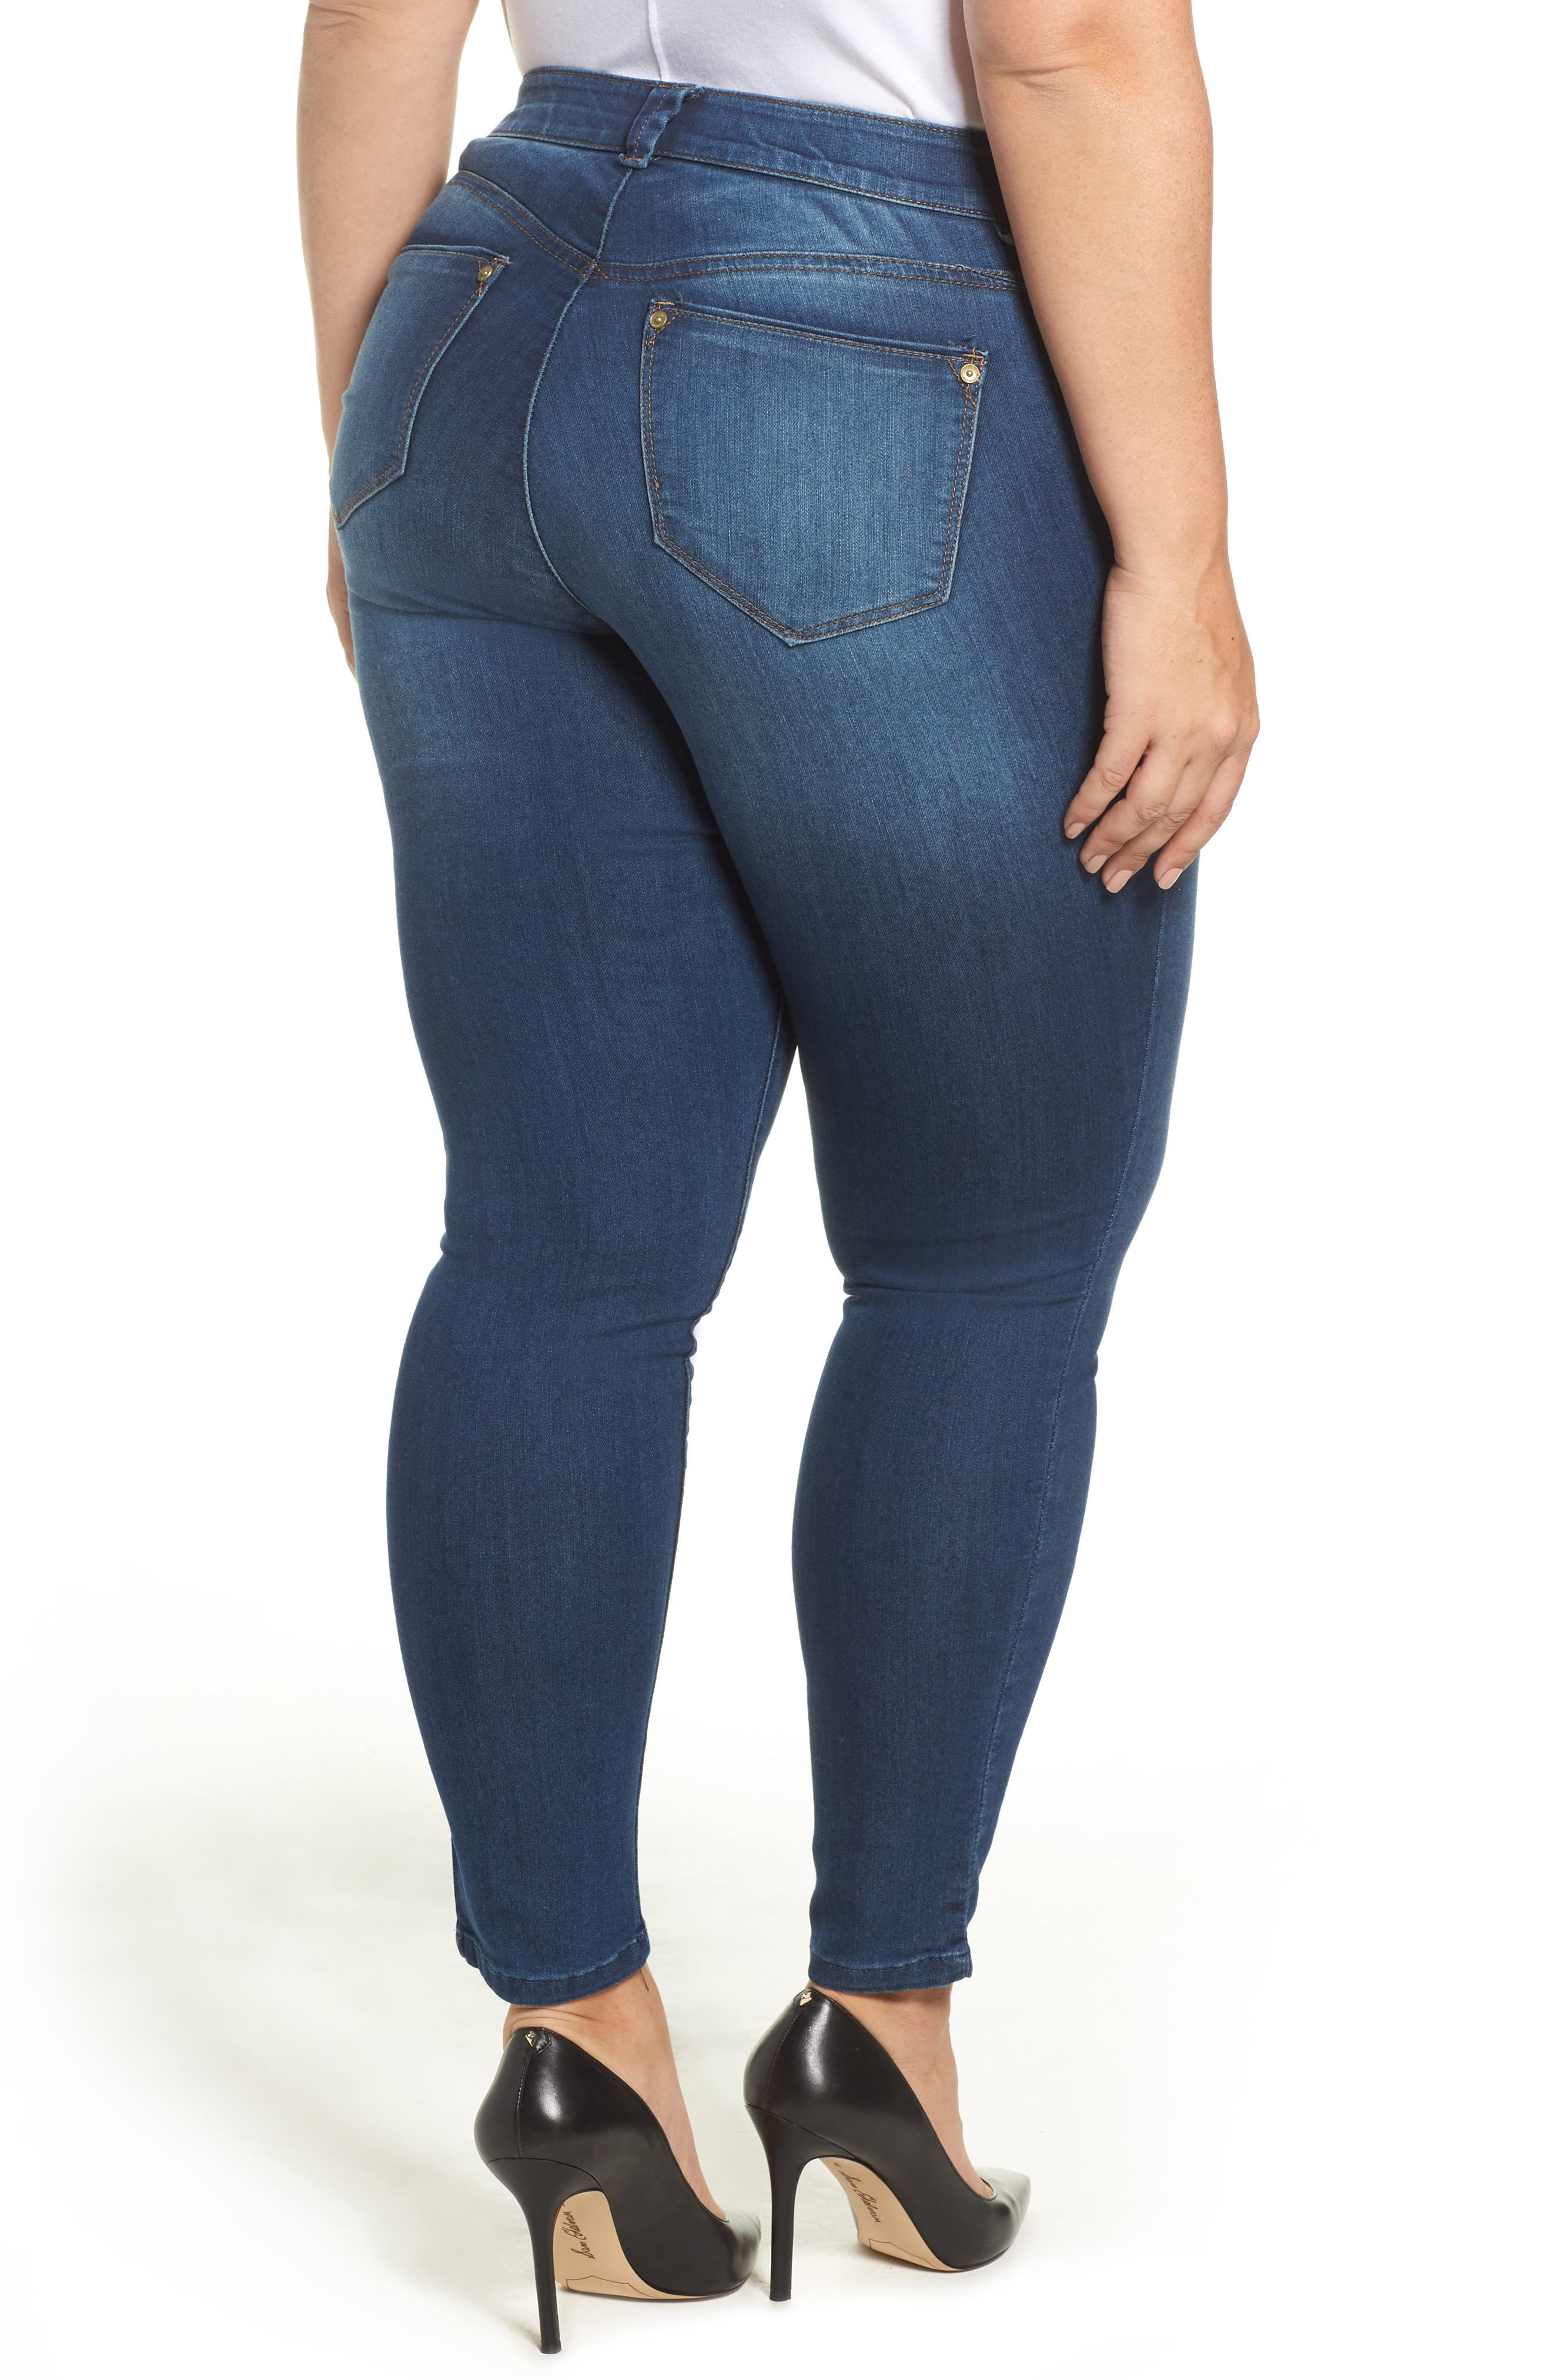 Ab-solution Skinny Jeans,                             Alternate thumbnail 2, color,                             420